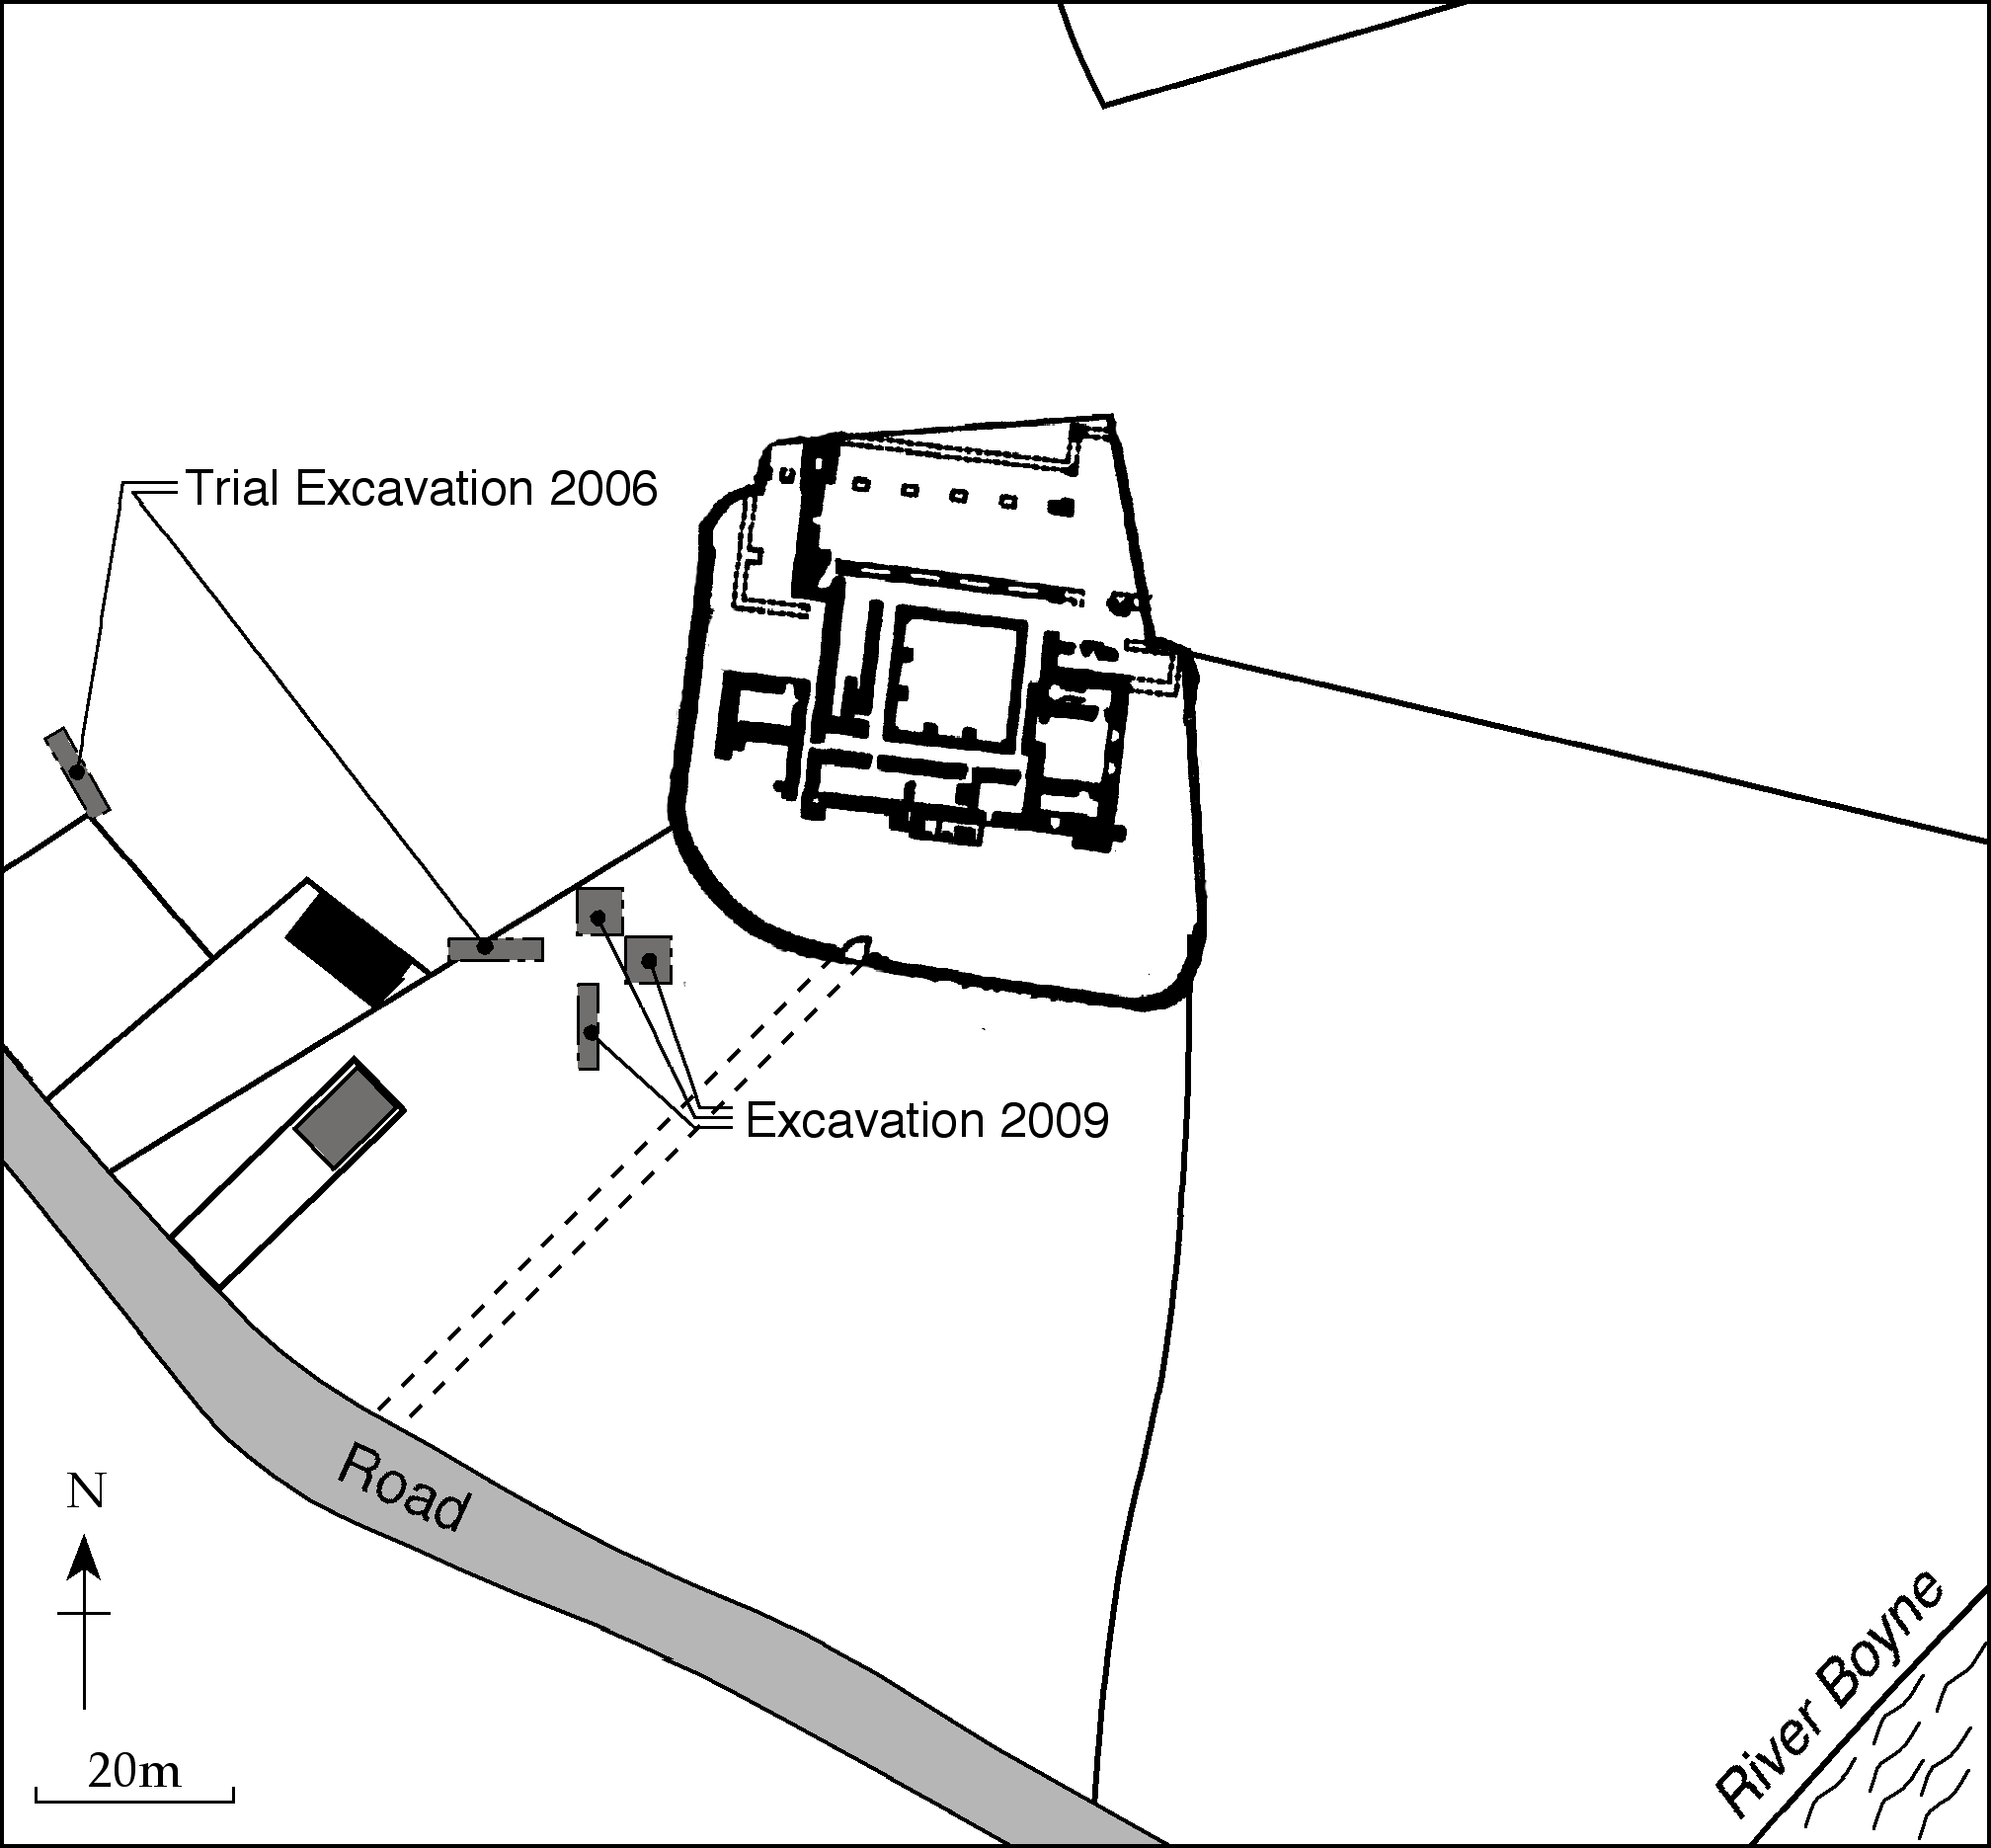 Leach Field Diagram